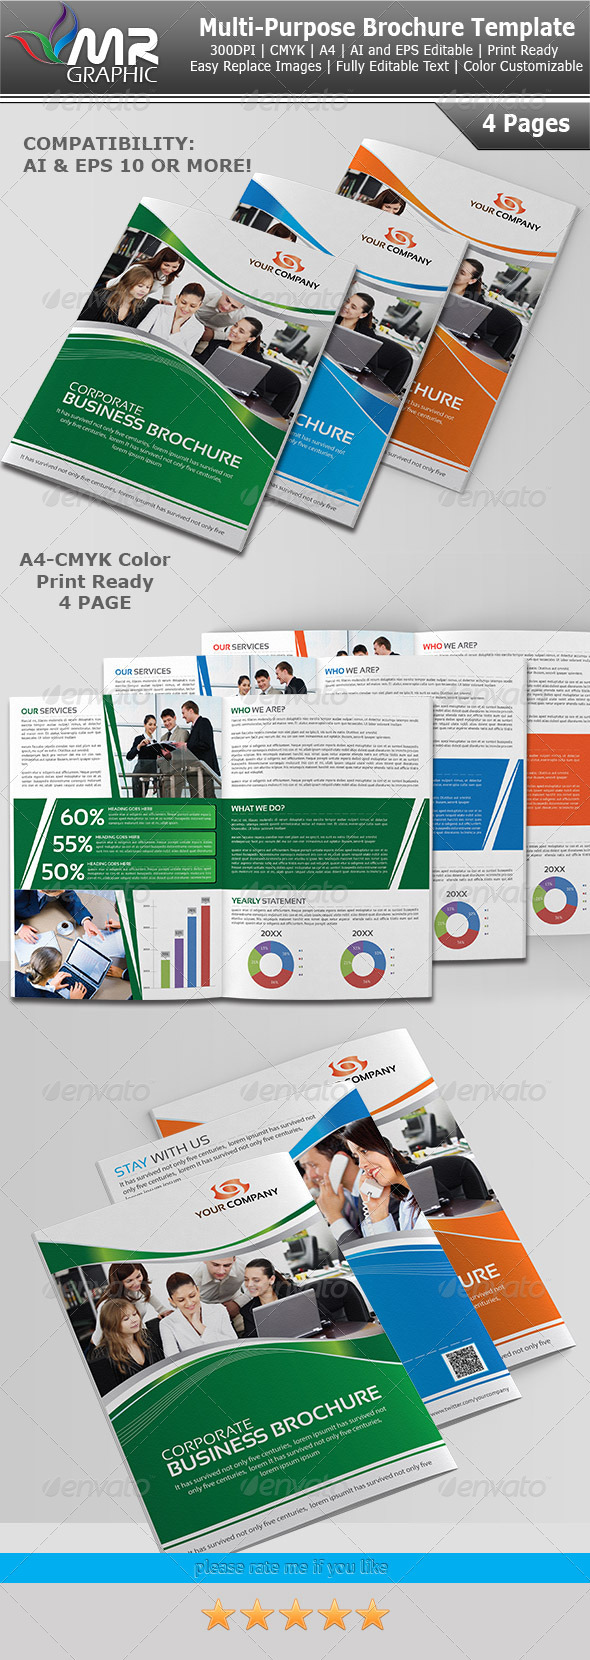 Multipurpose Business Brochure Template Vol-06 - Corporate Brochures